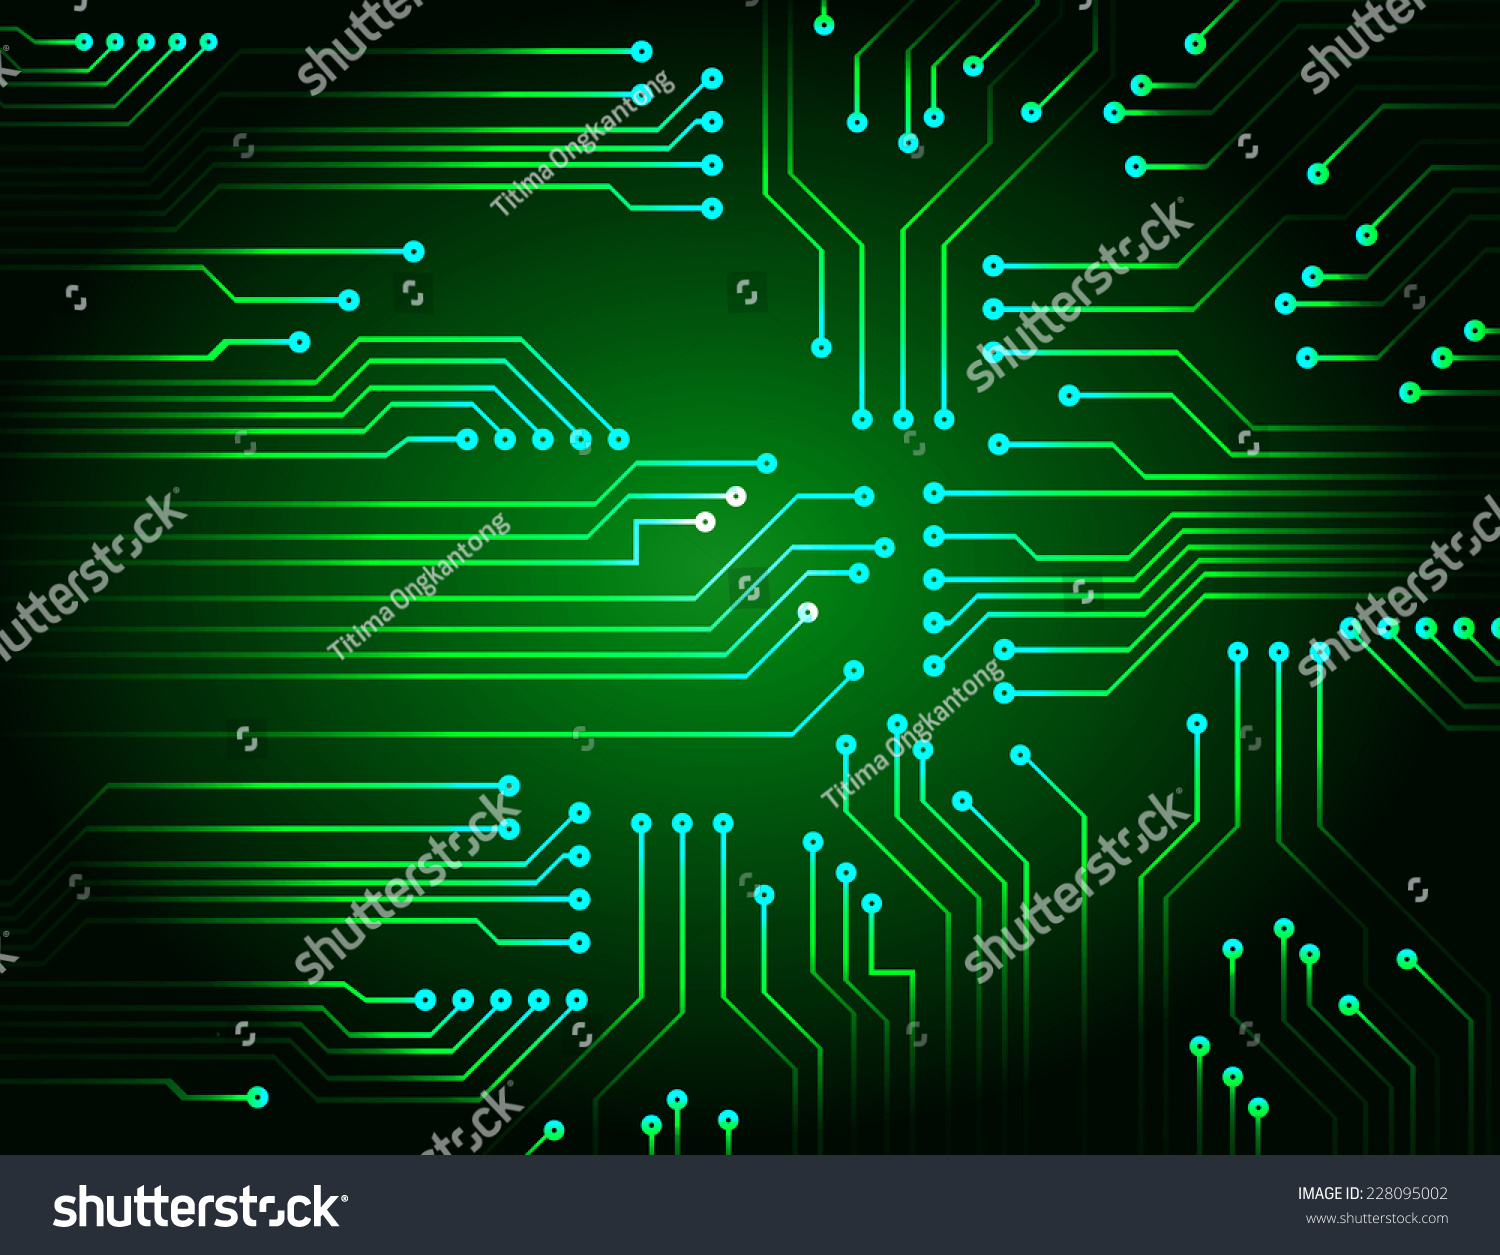 Future Technology Green Cyber Security Concept Background Abstract Circuit Board Design Over Vector Illustration Hi Speed Digital Internetmotion Move Blur Pixel Ez Canvas